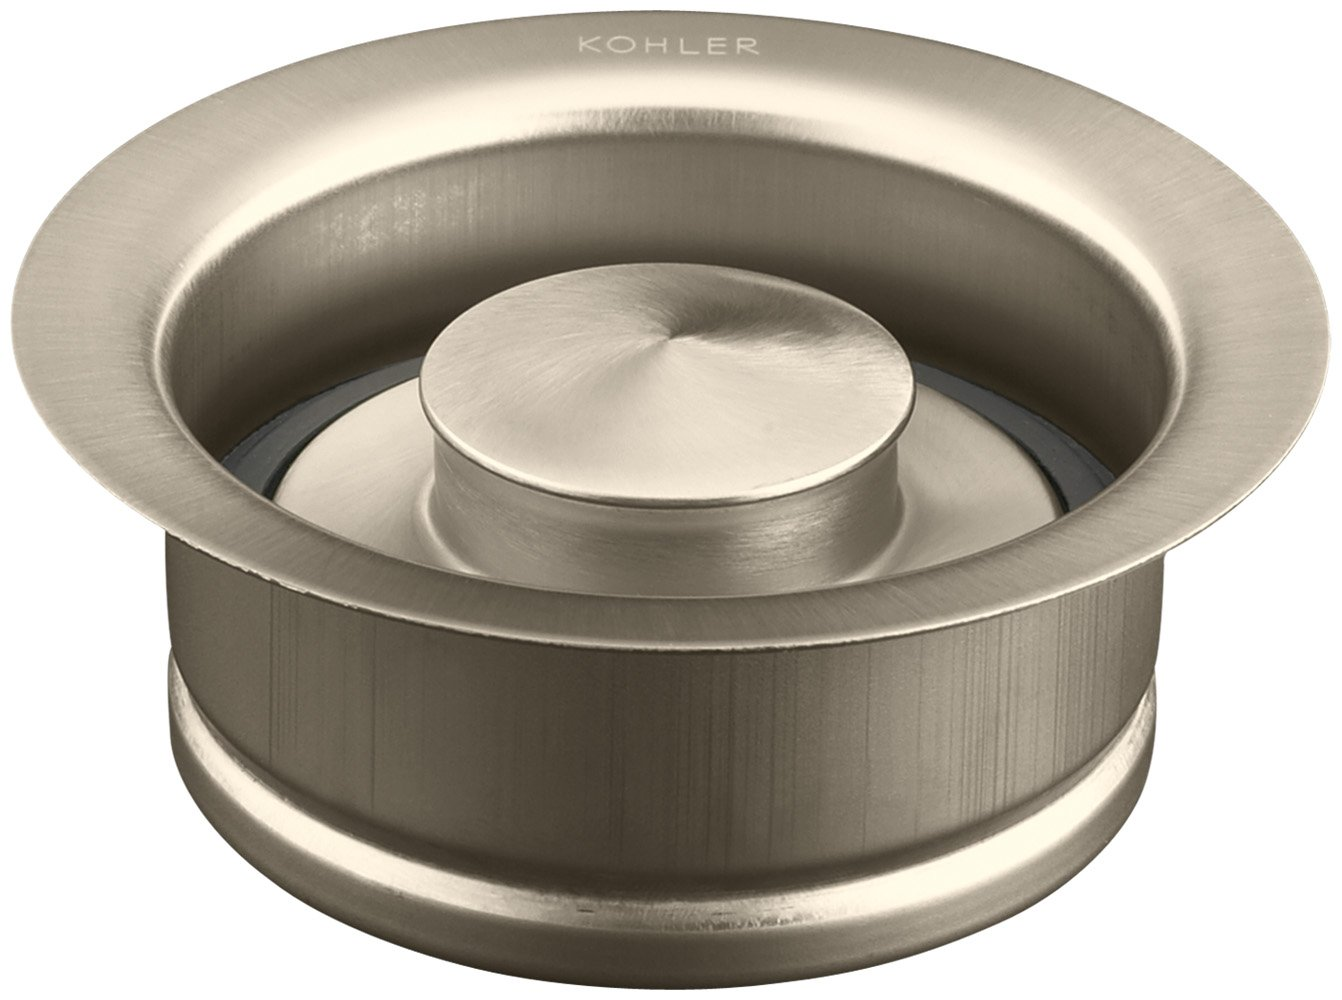 KOHLER K-11352-BV Disposal Flange, Vibrant Brushed Bronze by Kohler